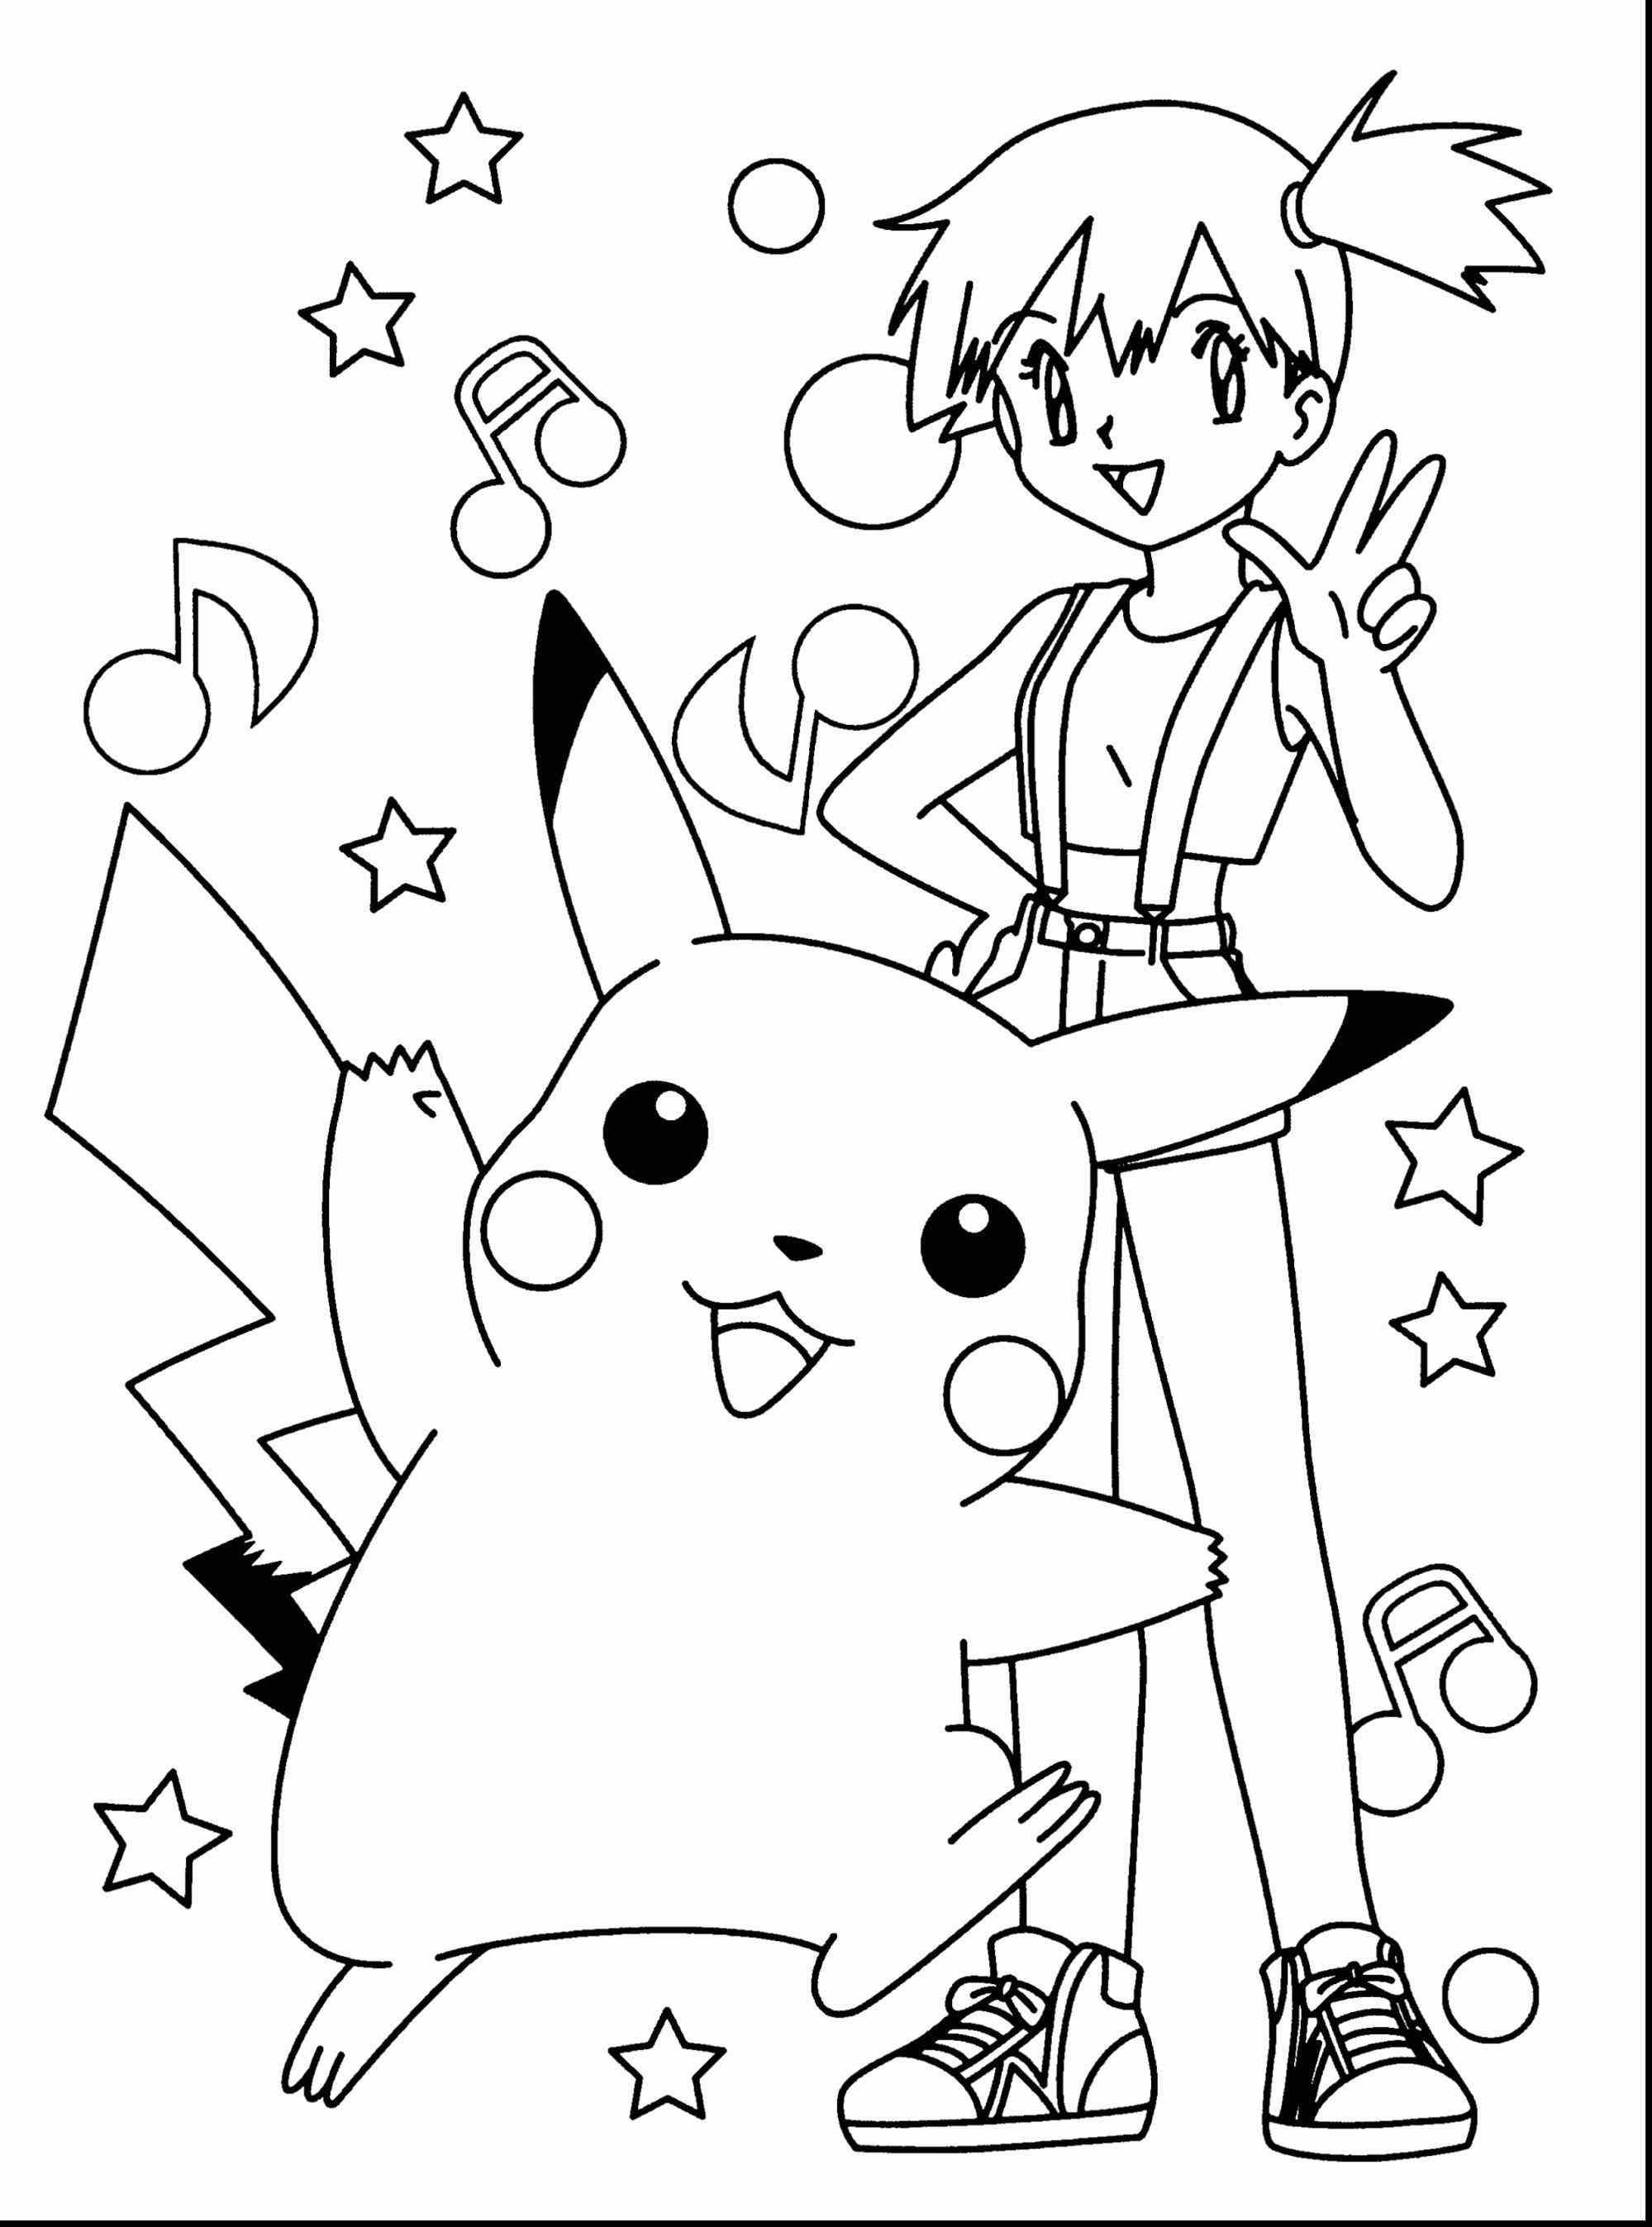 All Pokemon Coloring Pages Free Large Images Cakes Disney Kids